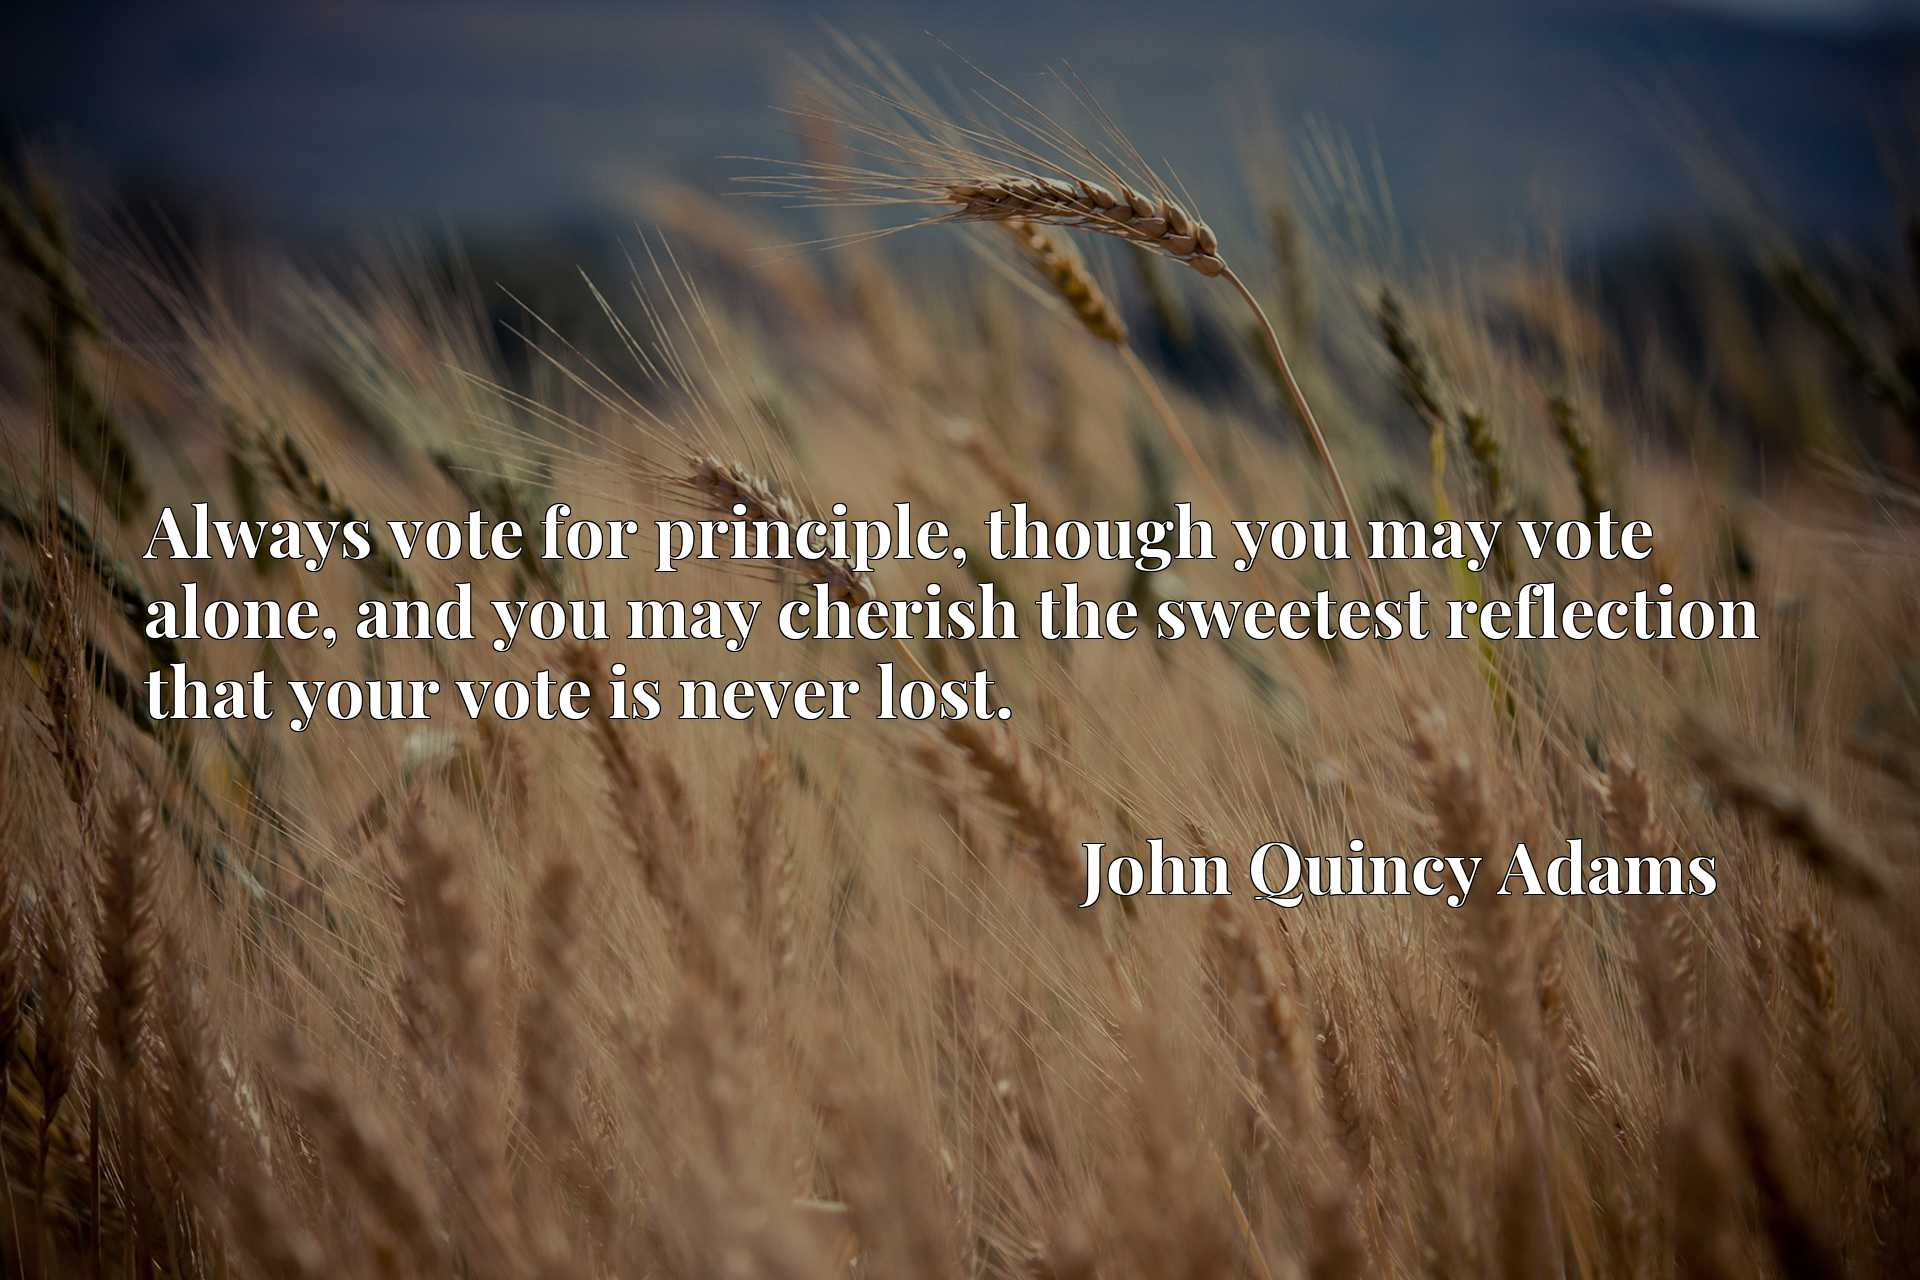 Always vote for principle, though you may vote alone, and you may cherish the sweetest reflection that your vote is never lost.